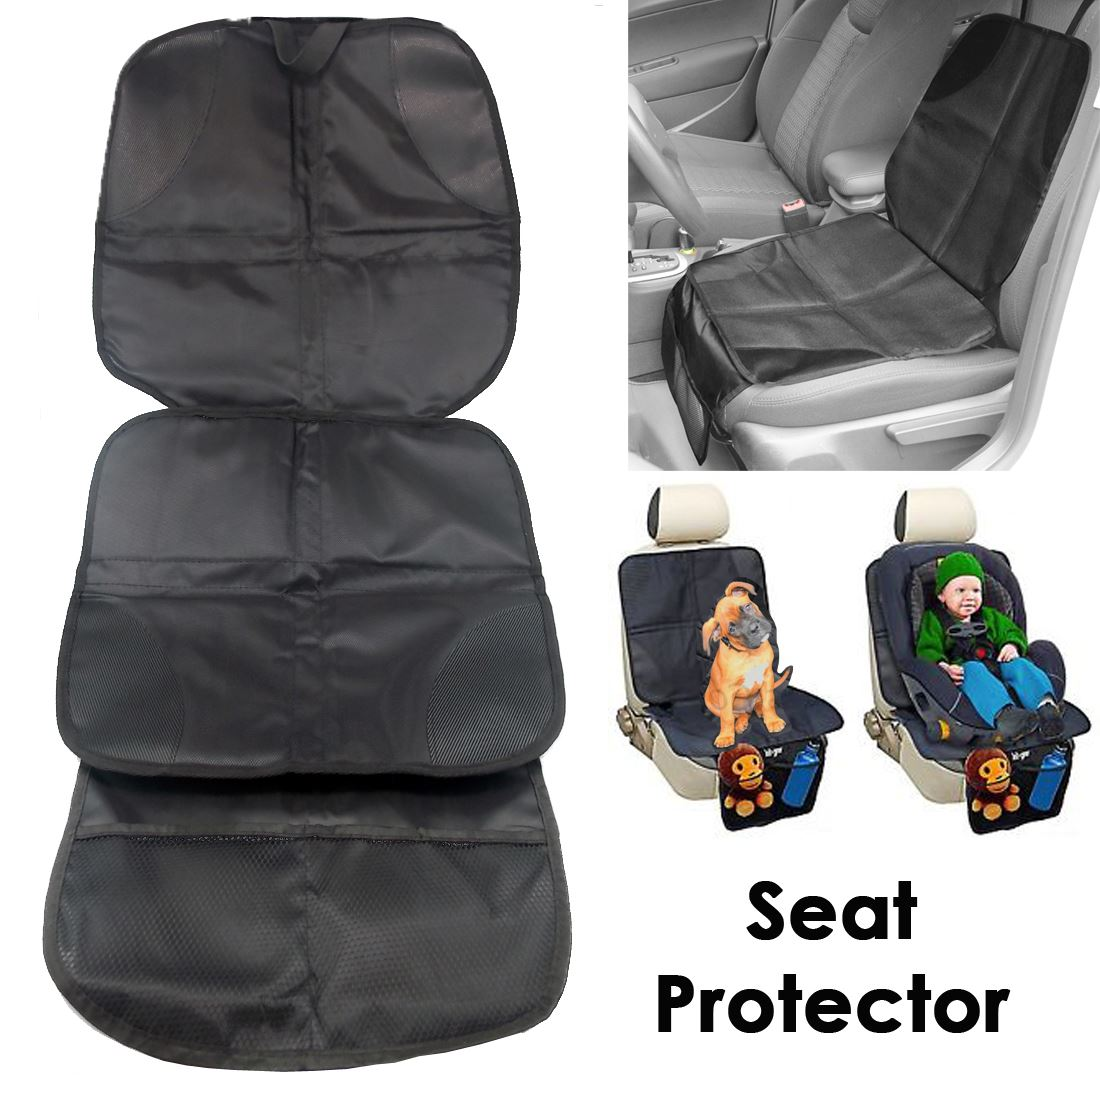 black car auto baby infant child pet seat accessories protector safety cushion ebay. Black Bedroom Furniture Sets. Home Design Ideas